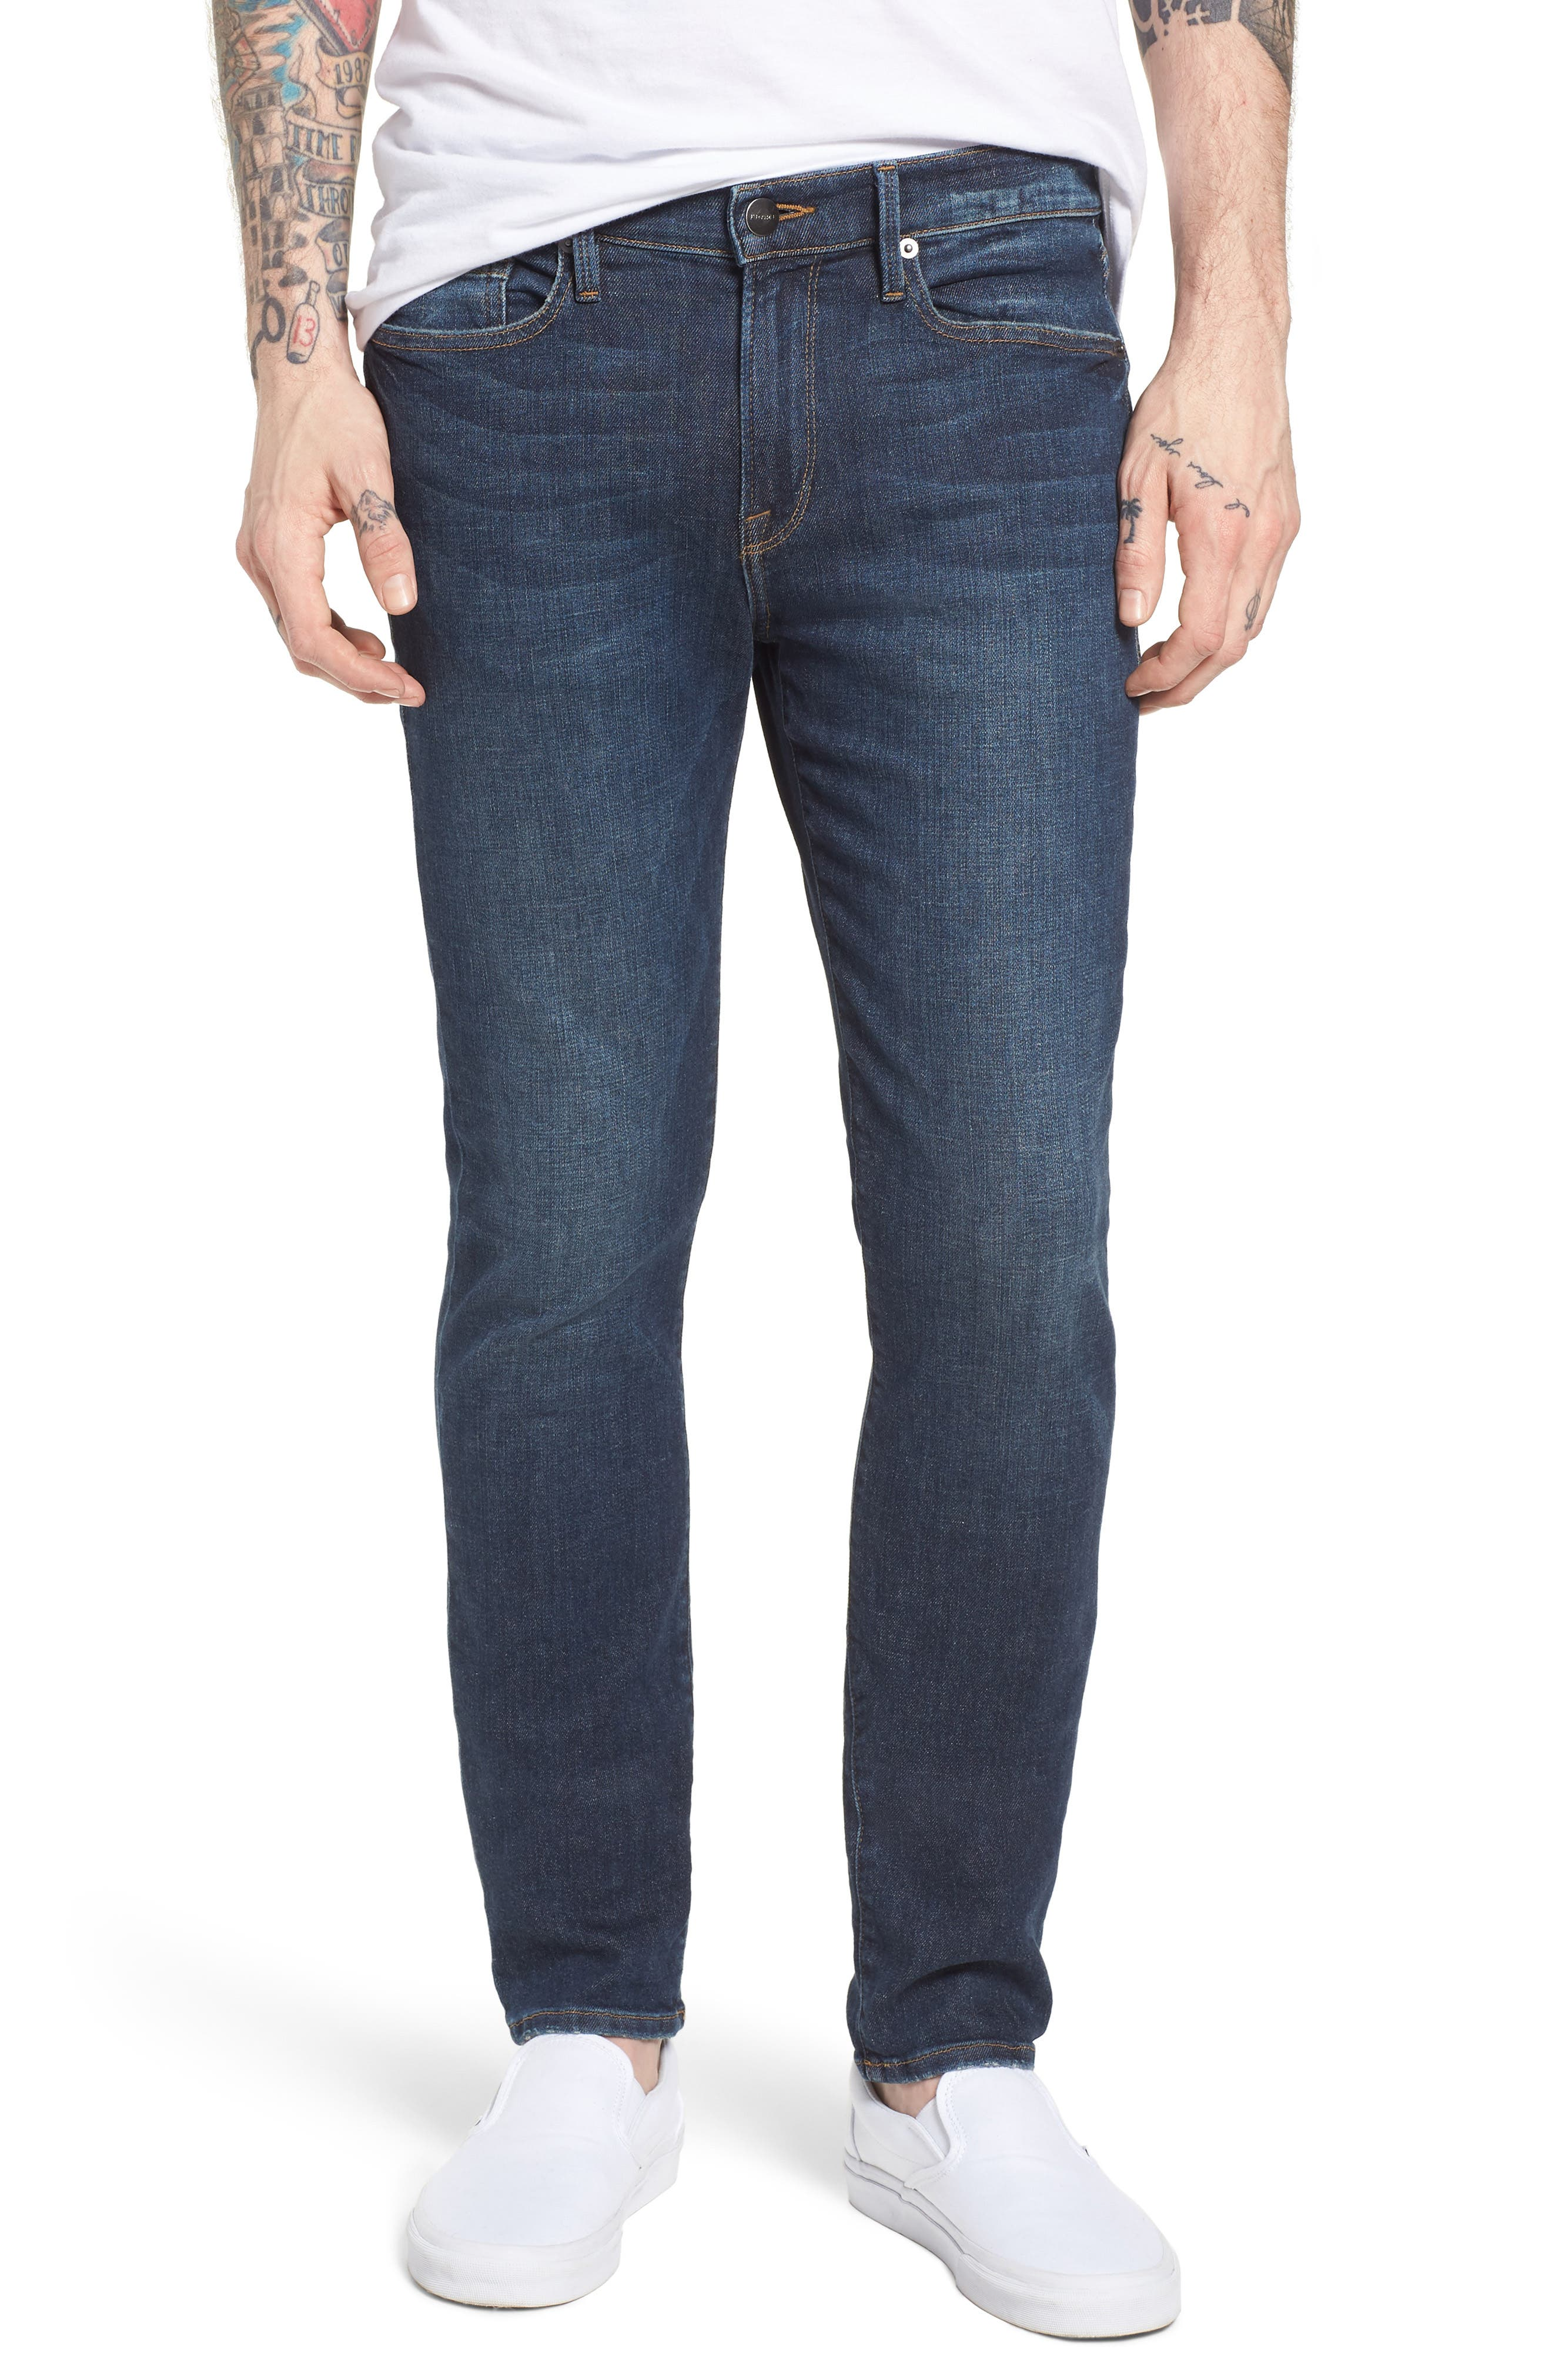 L'Homme Skinny Jeans,                         Main,                         color, 421